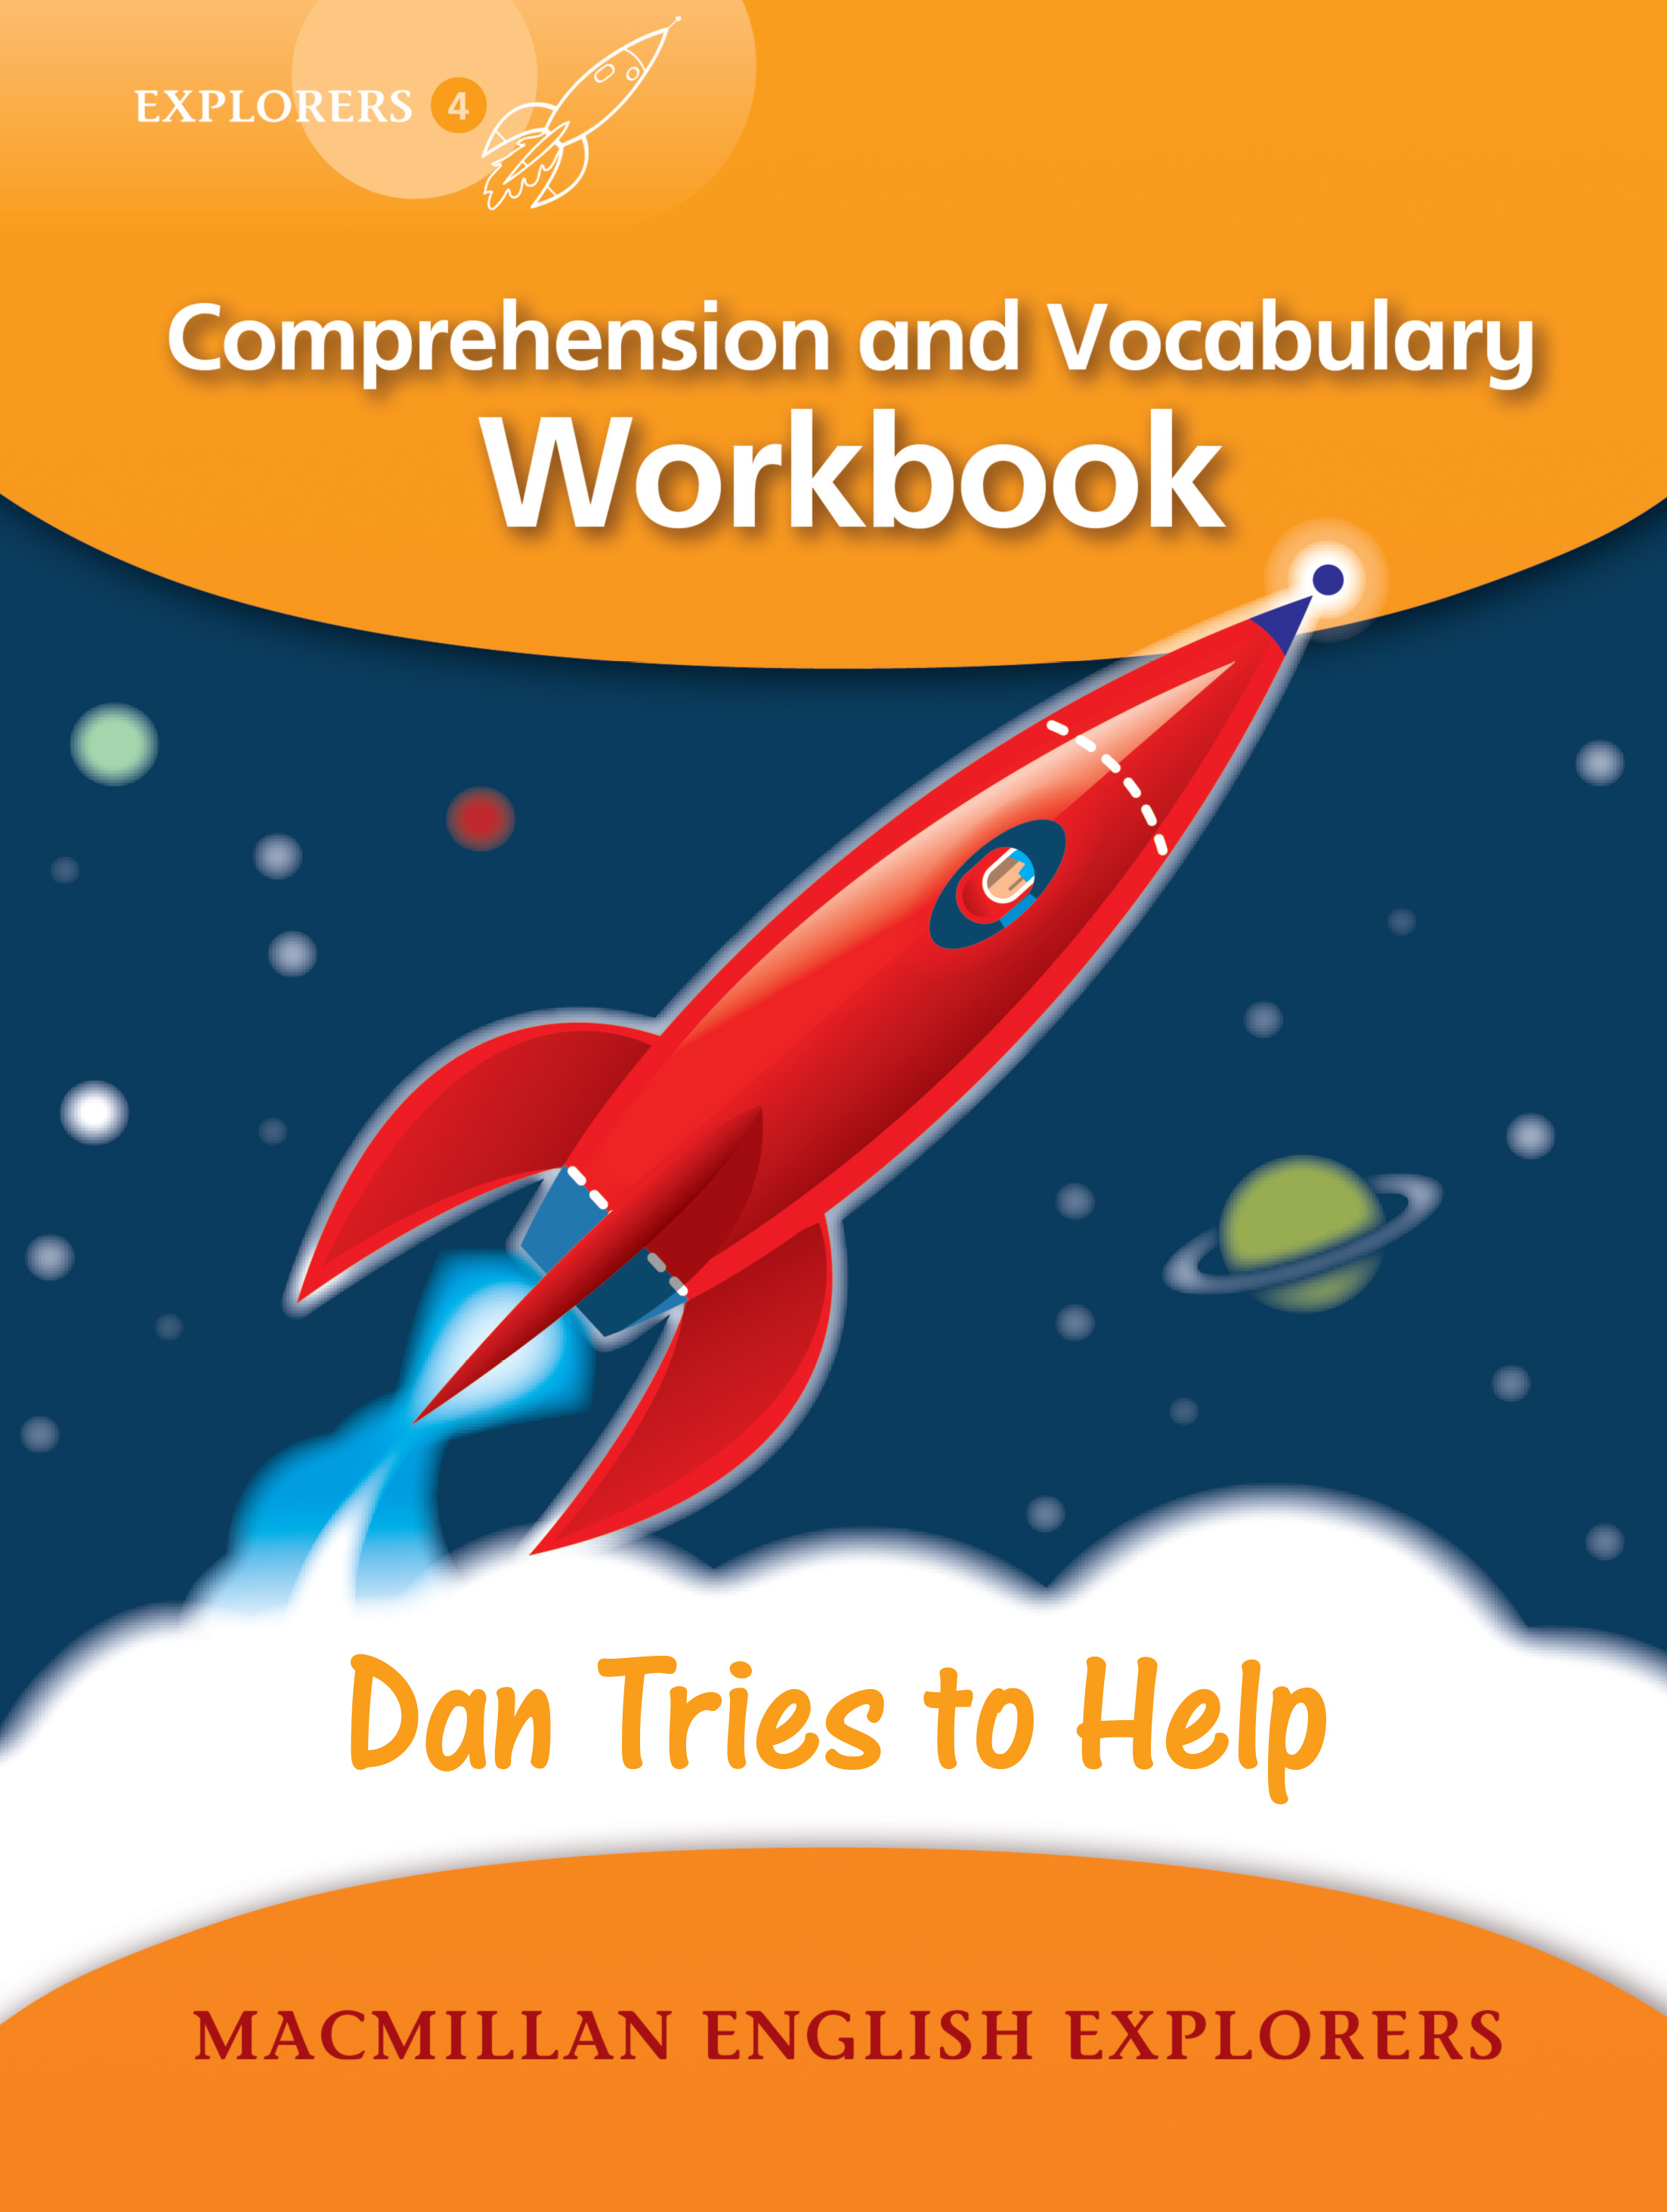 Explorers 4: Dan Tries to Help Workbook